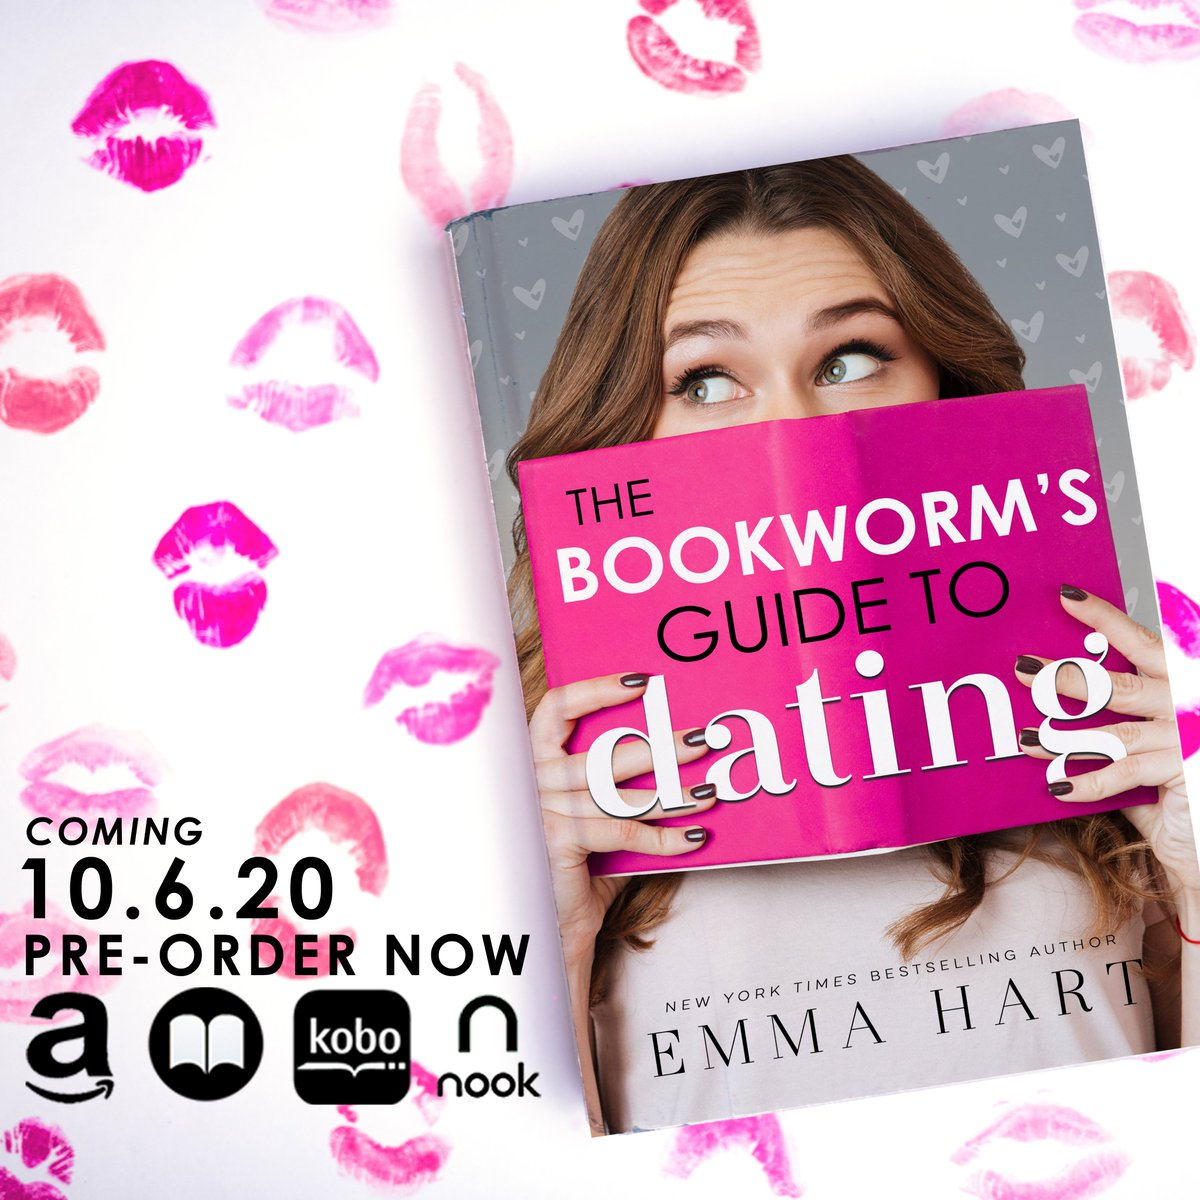 Check out the fun cover for THE BOOKWORM'S GUIDE TO DATING by @emmahartauthor! Coming October 6, pre-order now! Amazon US → https://amzn.to/2S7zfvM Amazon UK → https://amzn.to/379Gesn Apple Books → https://emmahart.pub/TBGTDapple Nook → https://emmahart.pub/TBGTDnookpic.twitter.com/w1a5GaA5zf